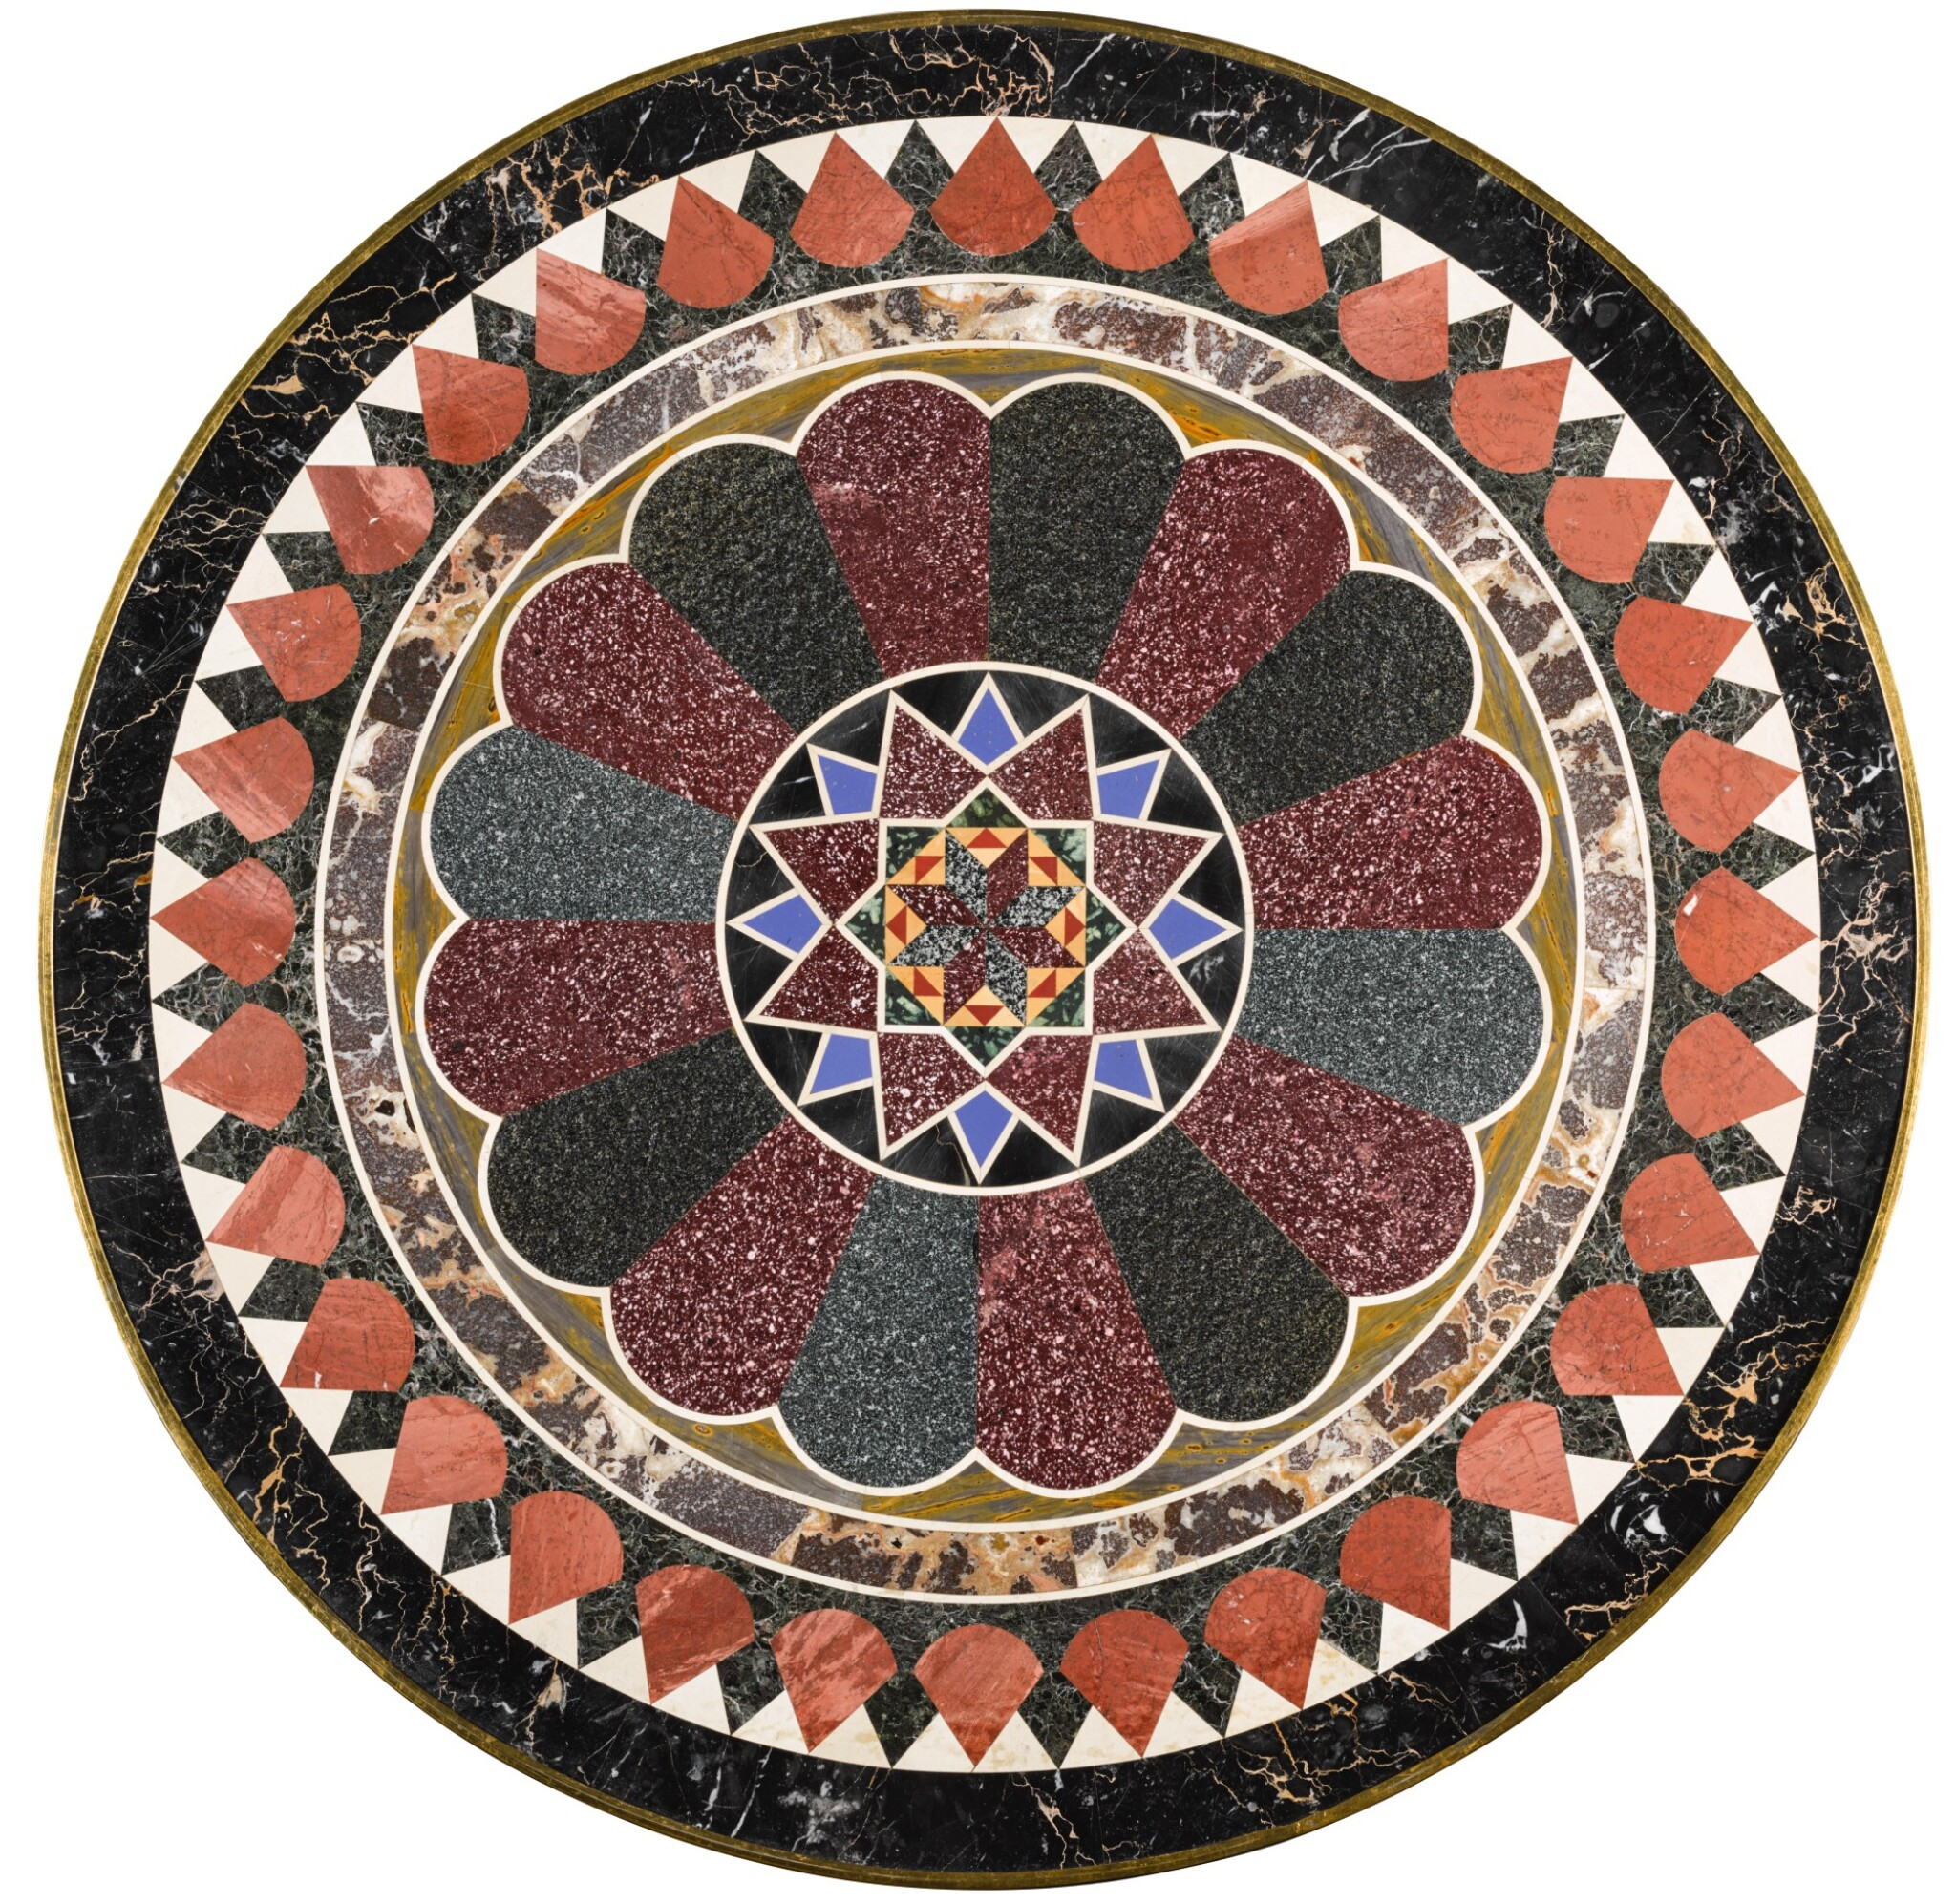 AN ITALIAN RED AND GREEN PORPHYRY, VITREOUS PASTE AND MARBLE TABLE TOP, ROME, ATTRIBUTED TO FRANCESCO SIBILIO FIRST HALF 19TH CENTURY, ON A LATER EMPIRE STYLE GILT-BRONZE AND MAHOGANY BASE